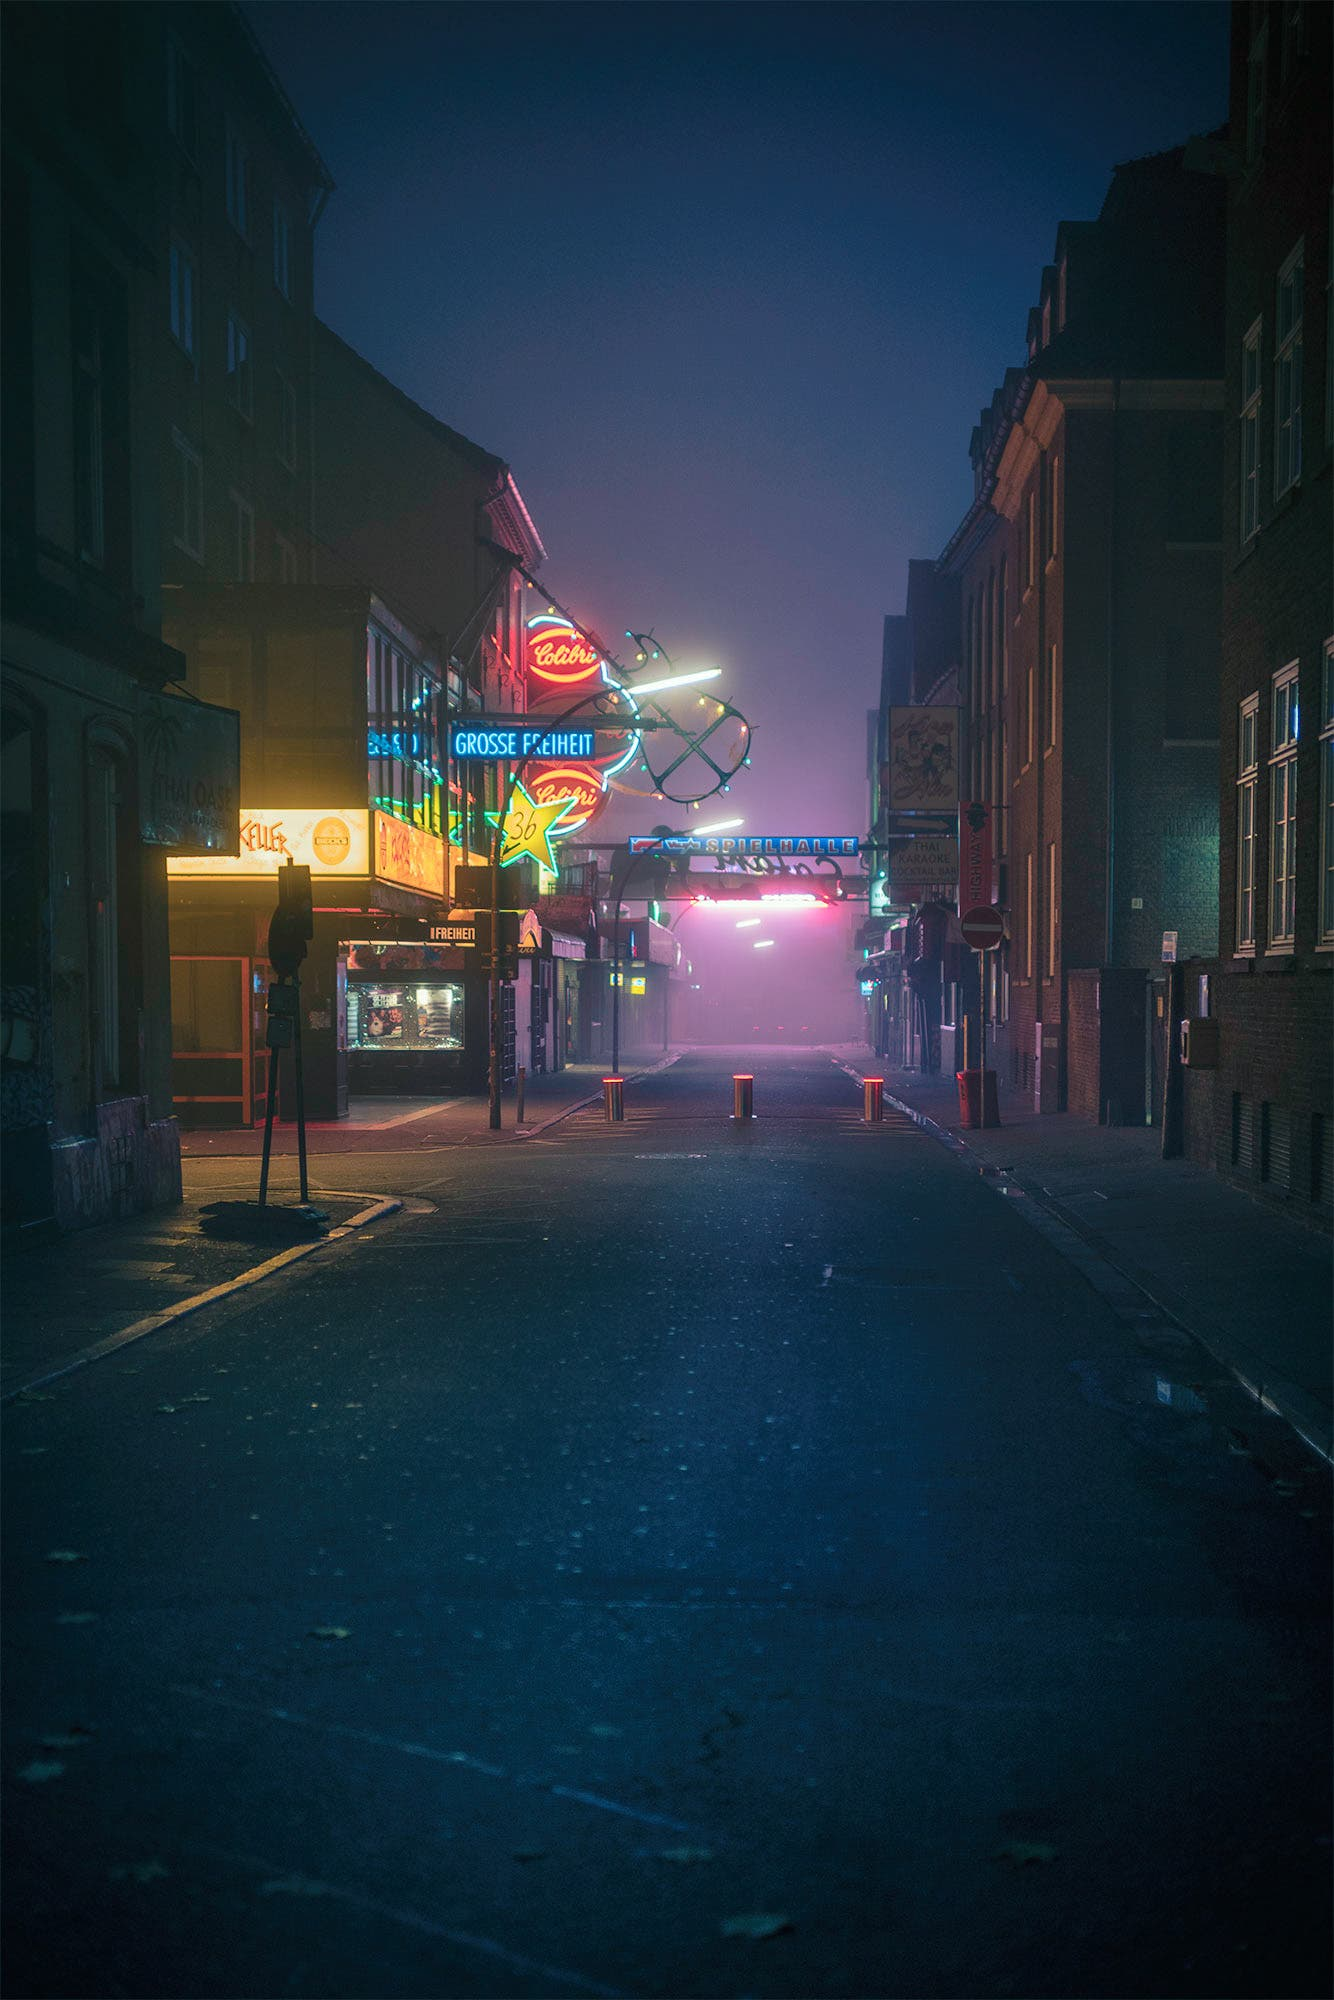 Mark Broyer Takes Us to a Foggy Early Morning Stroll in Hamburg